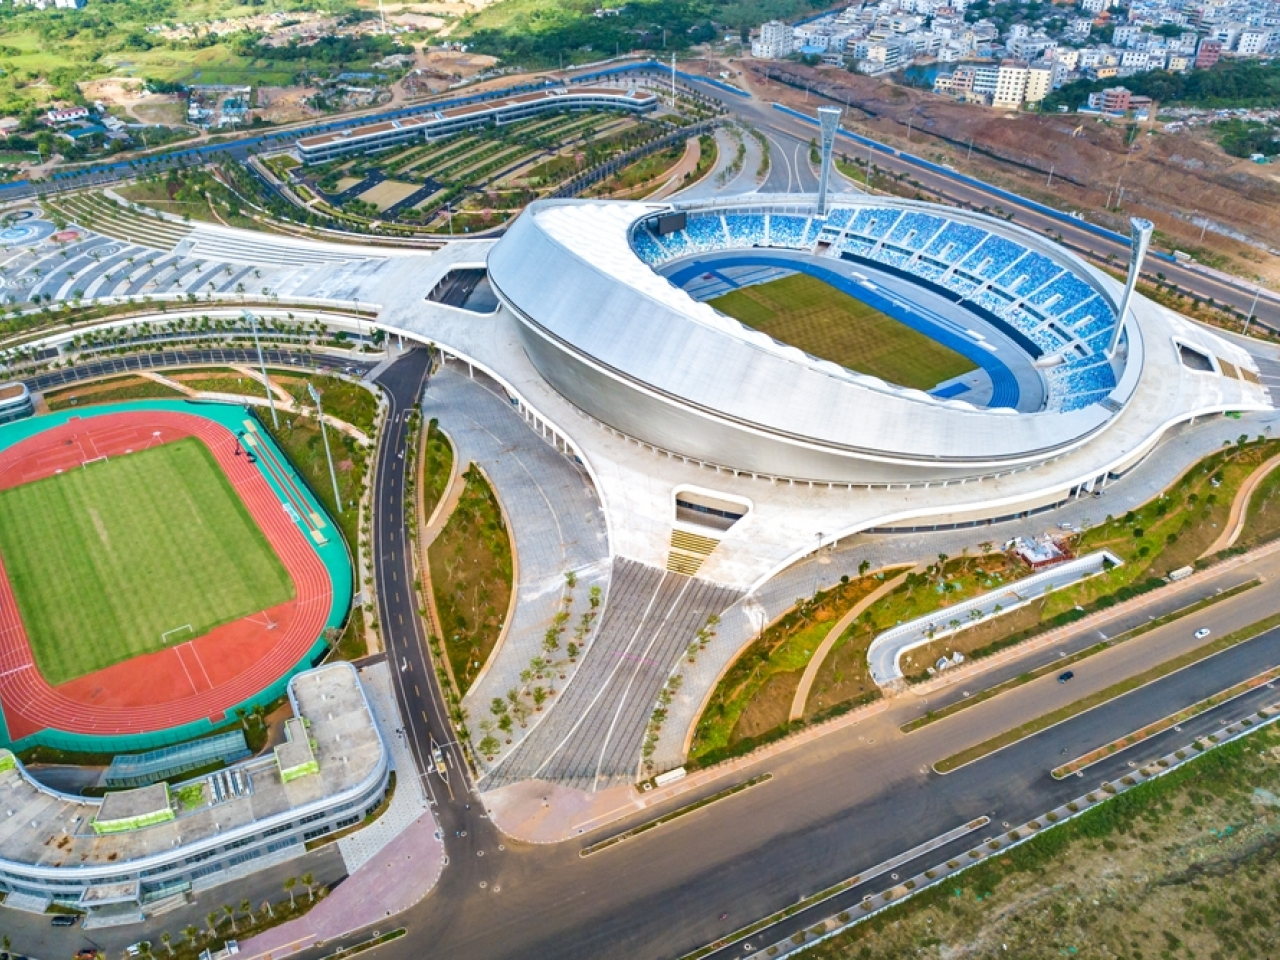 The teams, on the southern island province of Hainan, were desperate to lose to avoid facing a stronger opponent in the elimination round of the competition. File image: Shutterstock